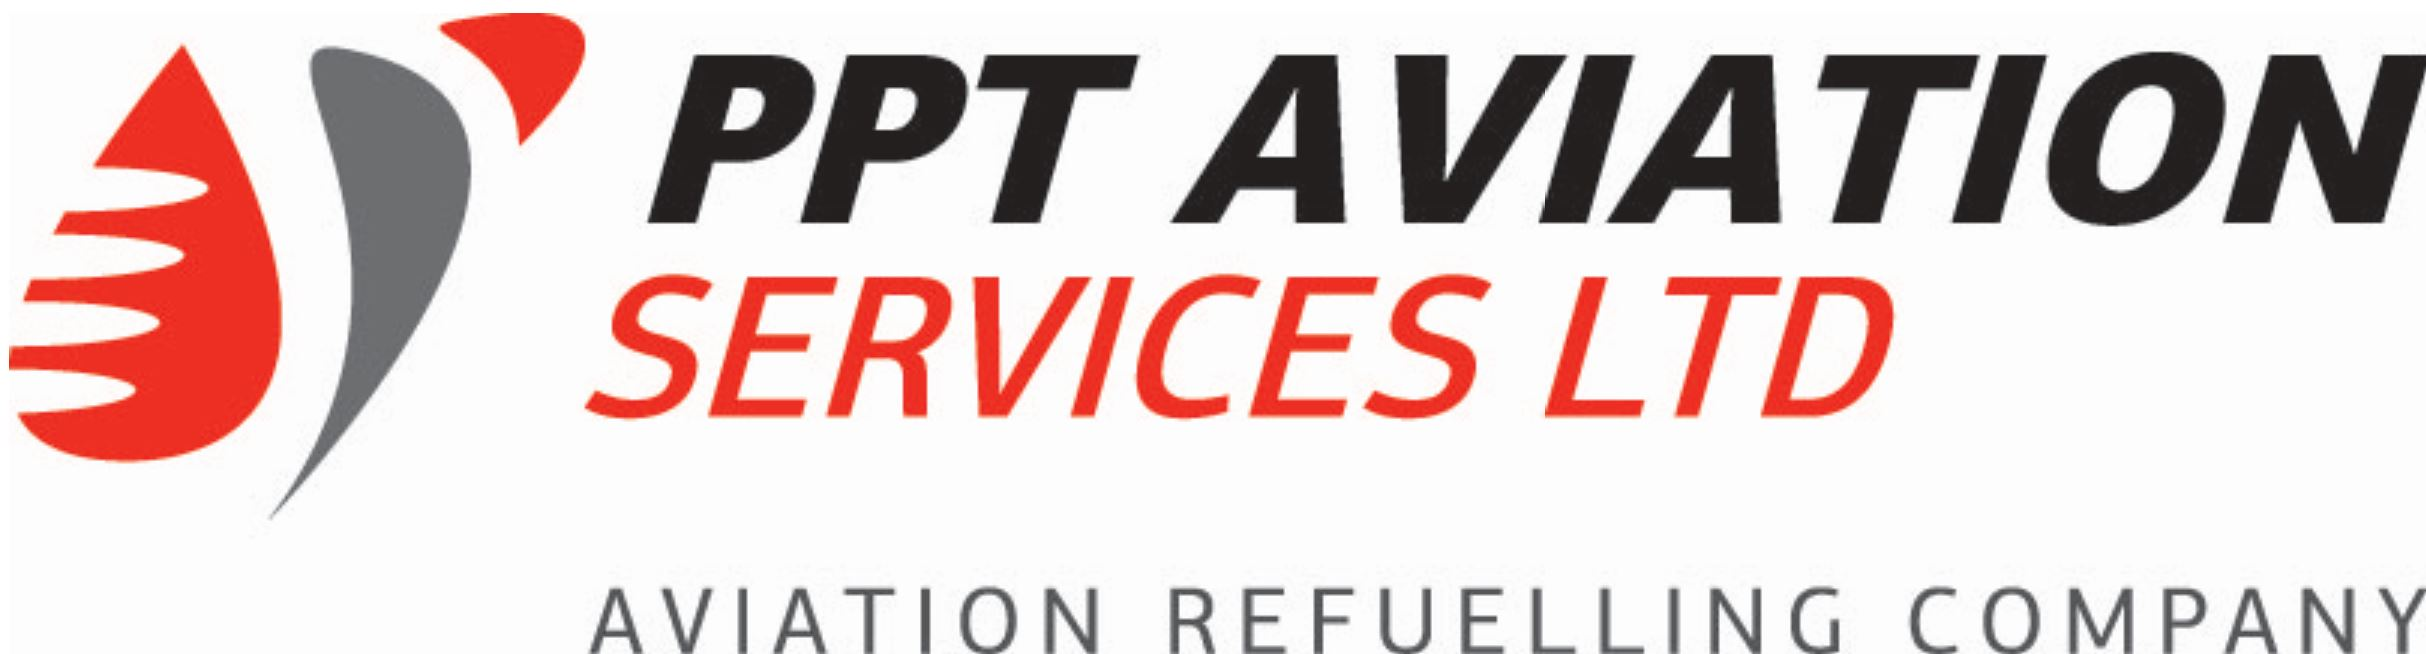 PPT Aviation Services Ltd